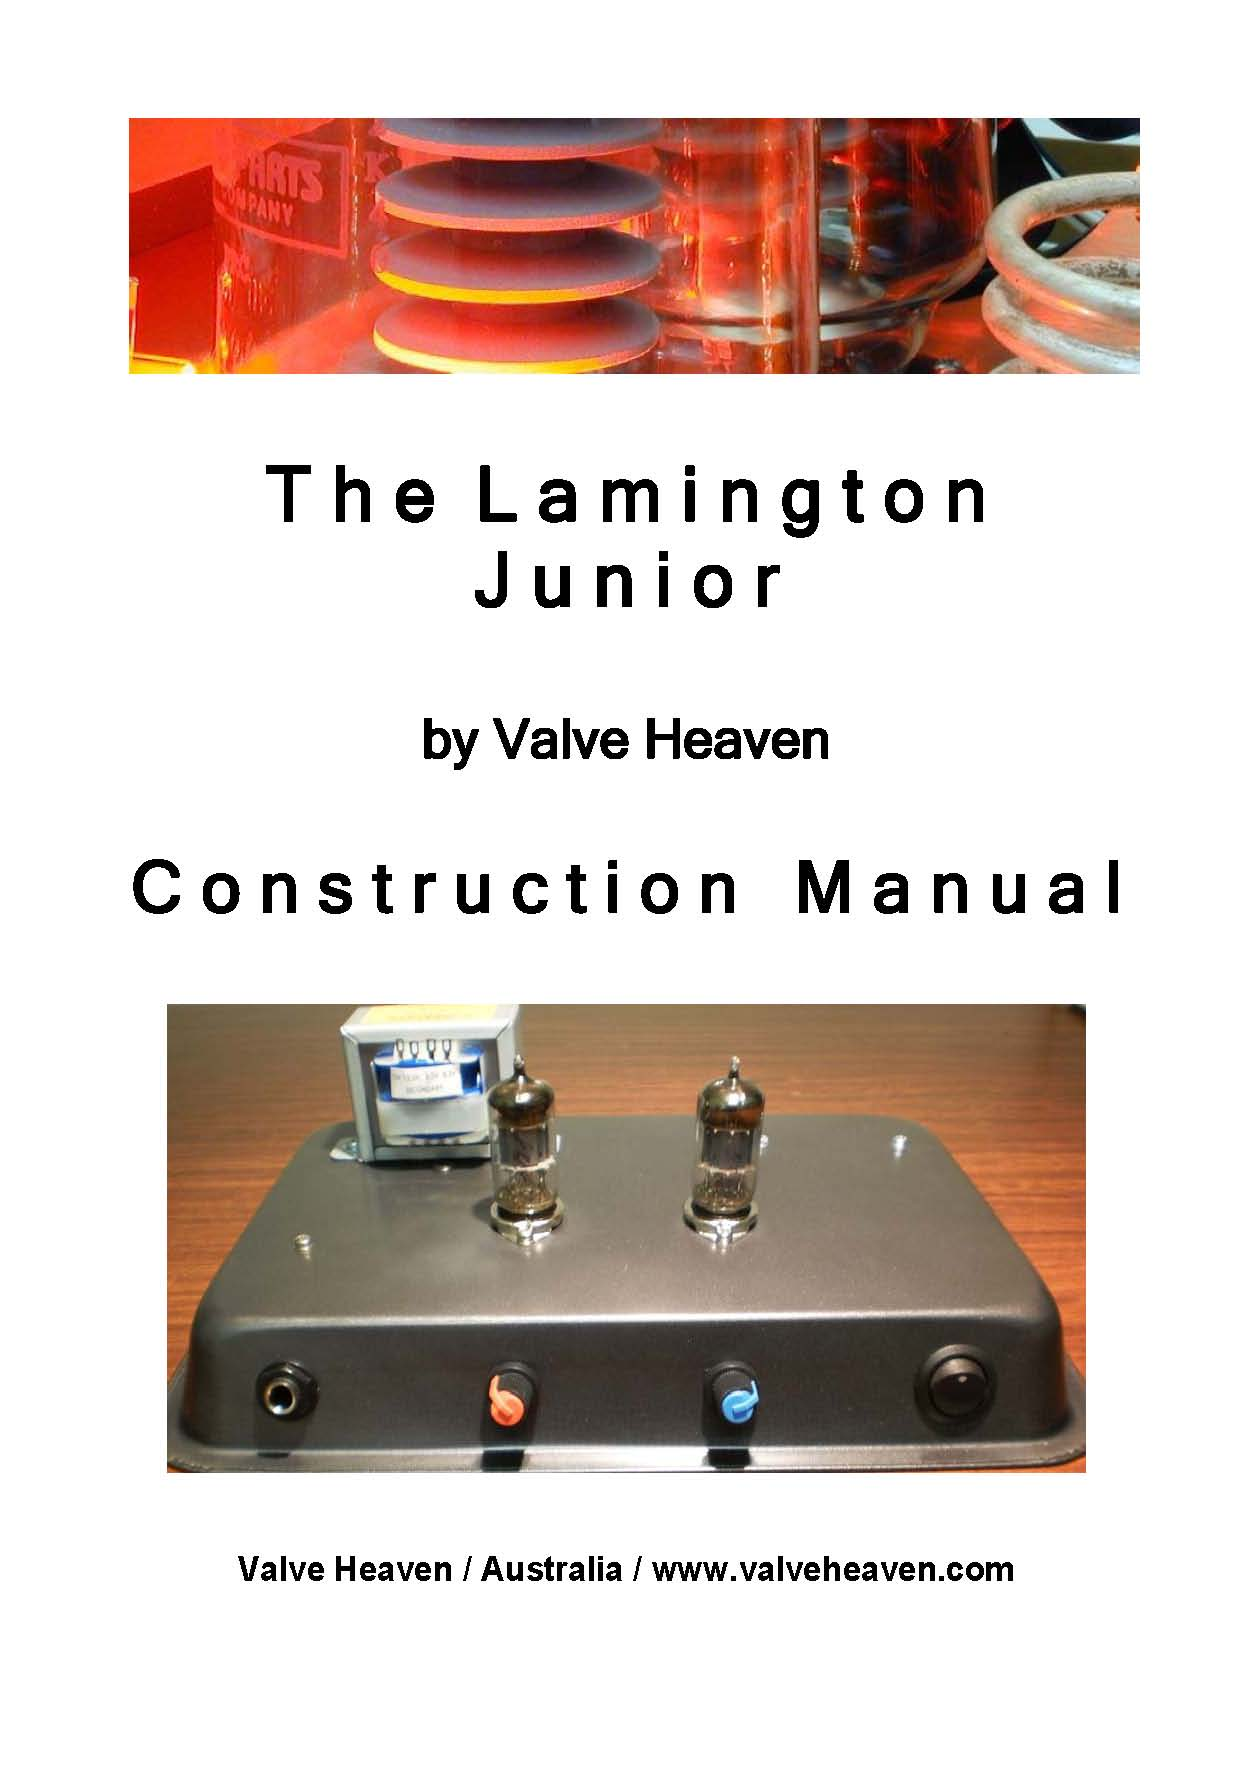 Lamington Jnr Construction Manual Cover